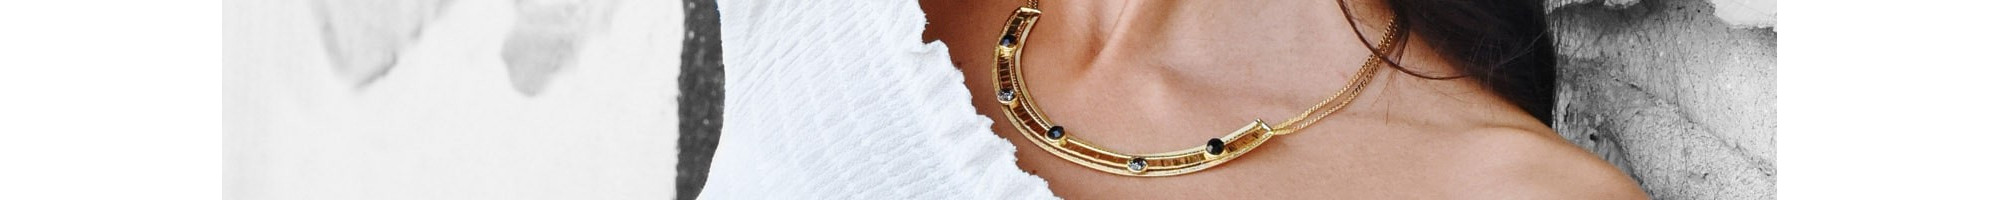 Greek Jewelry -  Mediterranean Luxus | Shop online at BIJOU BOX